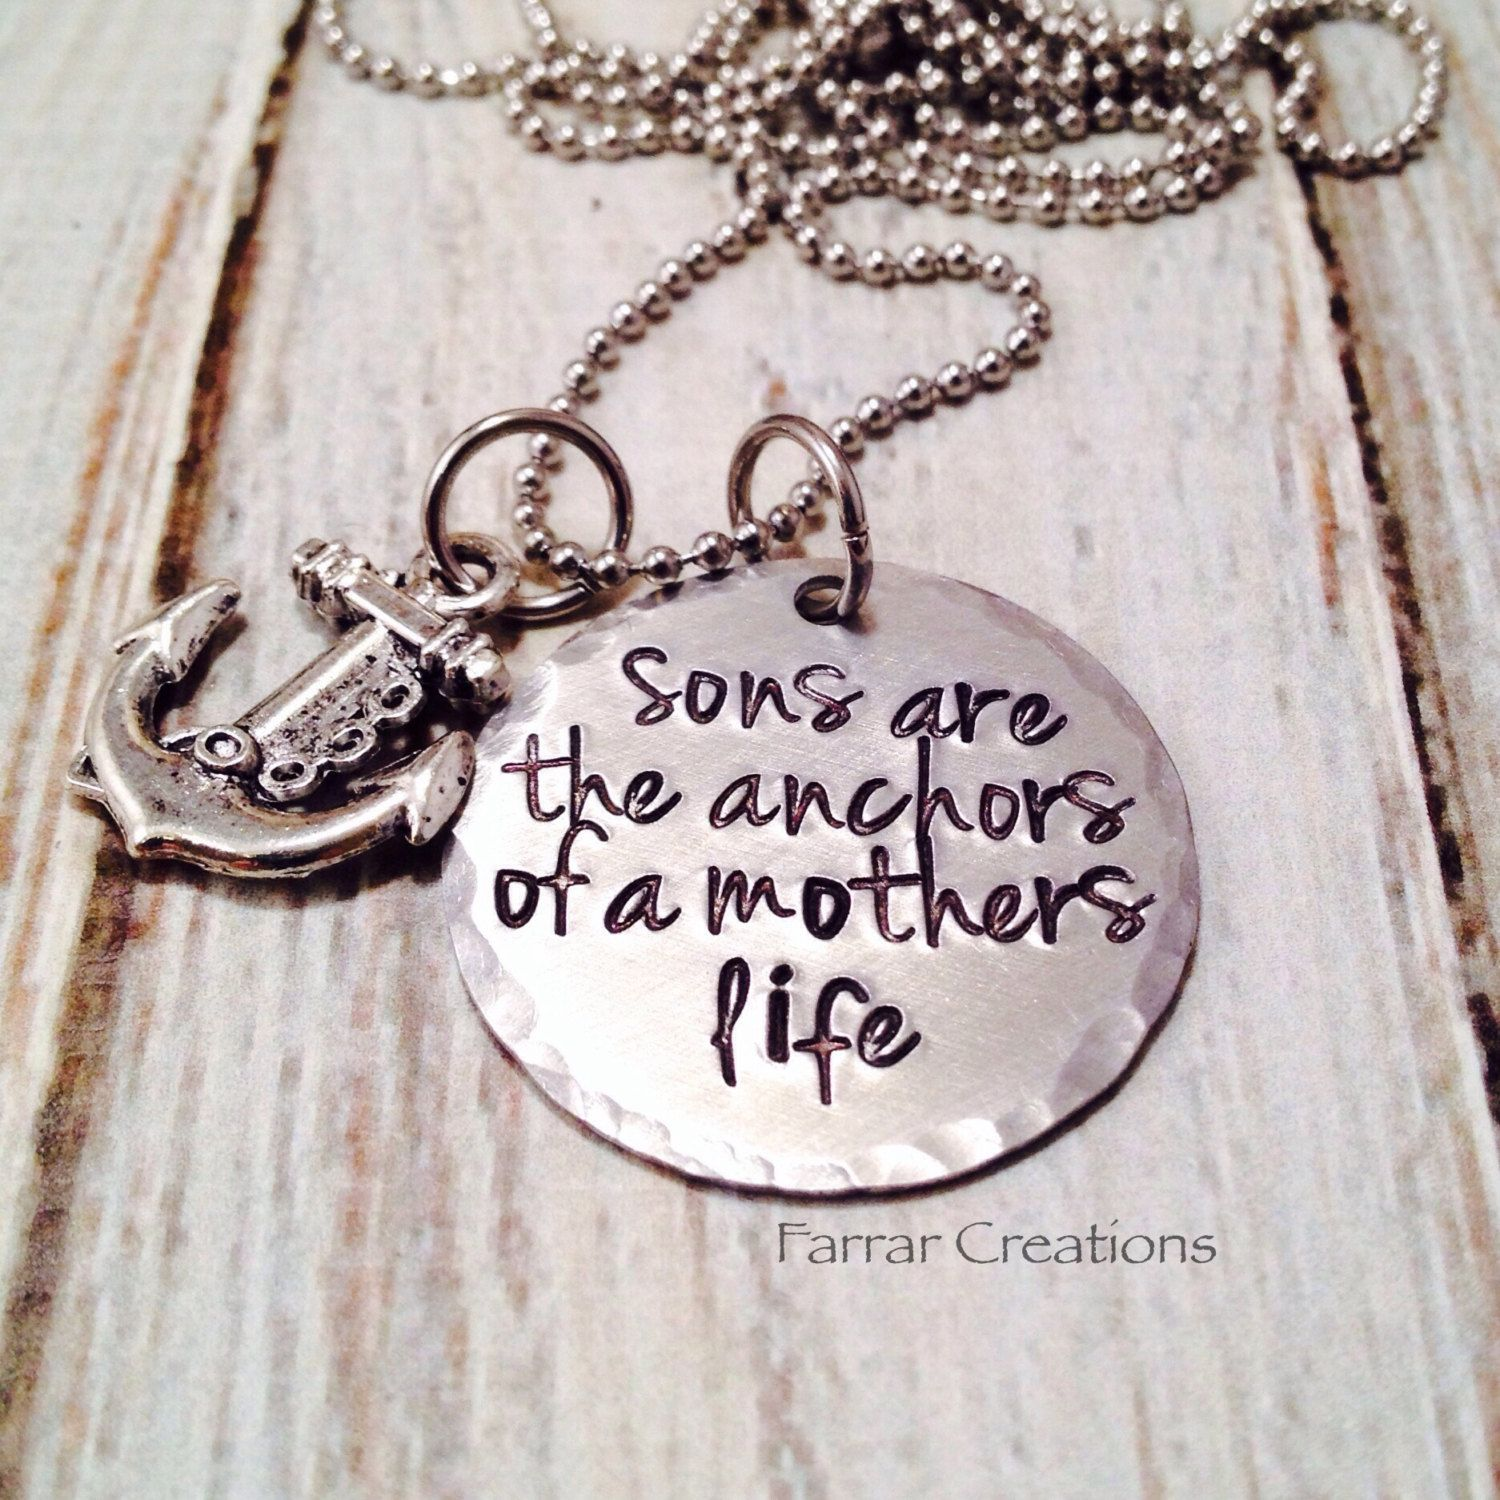 Mother Son+necklace++ Sons+are+the+anchors+of+a+by+FarrarCreations 161e9d9d31ac